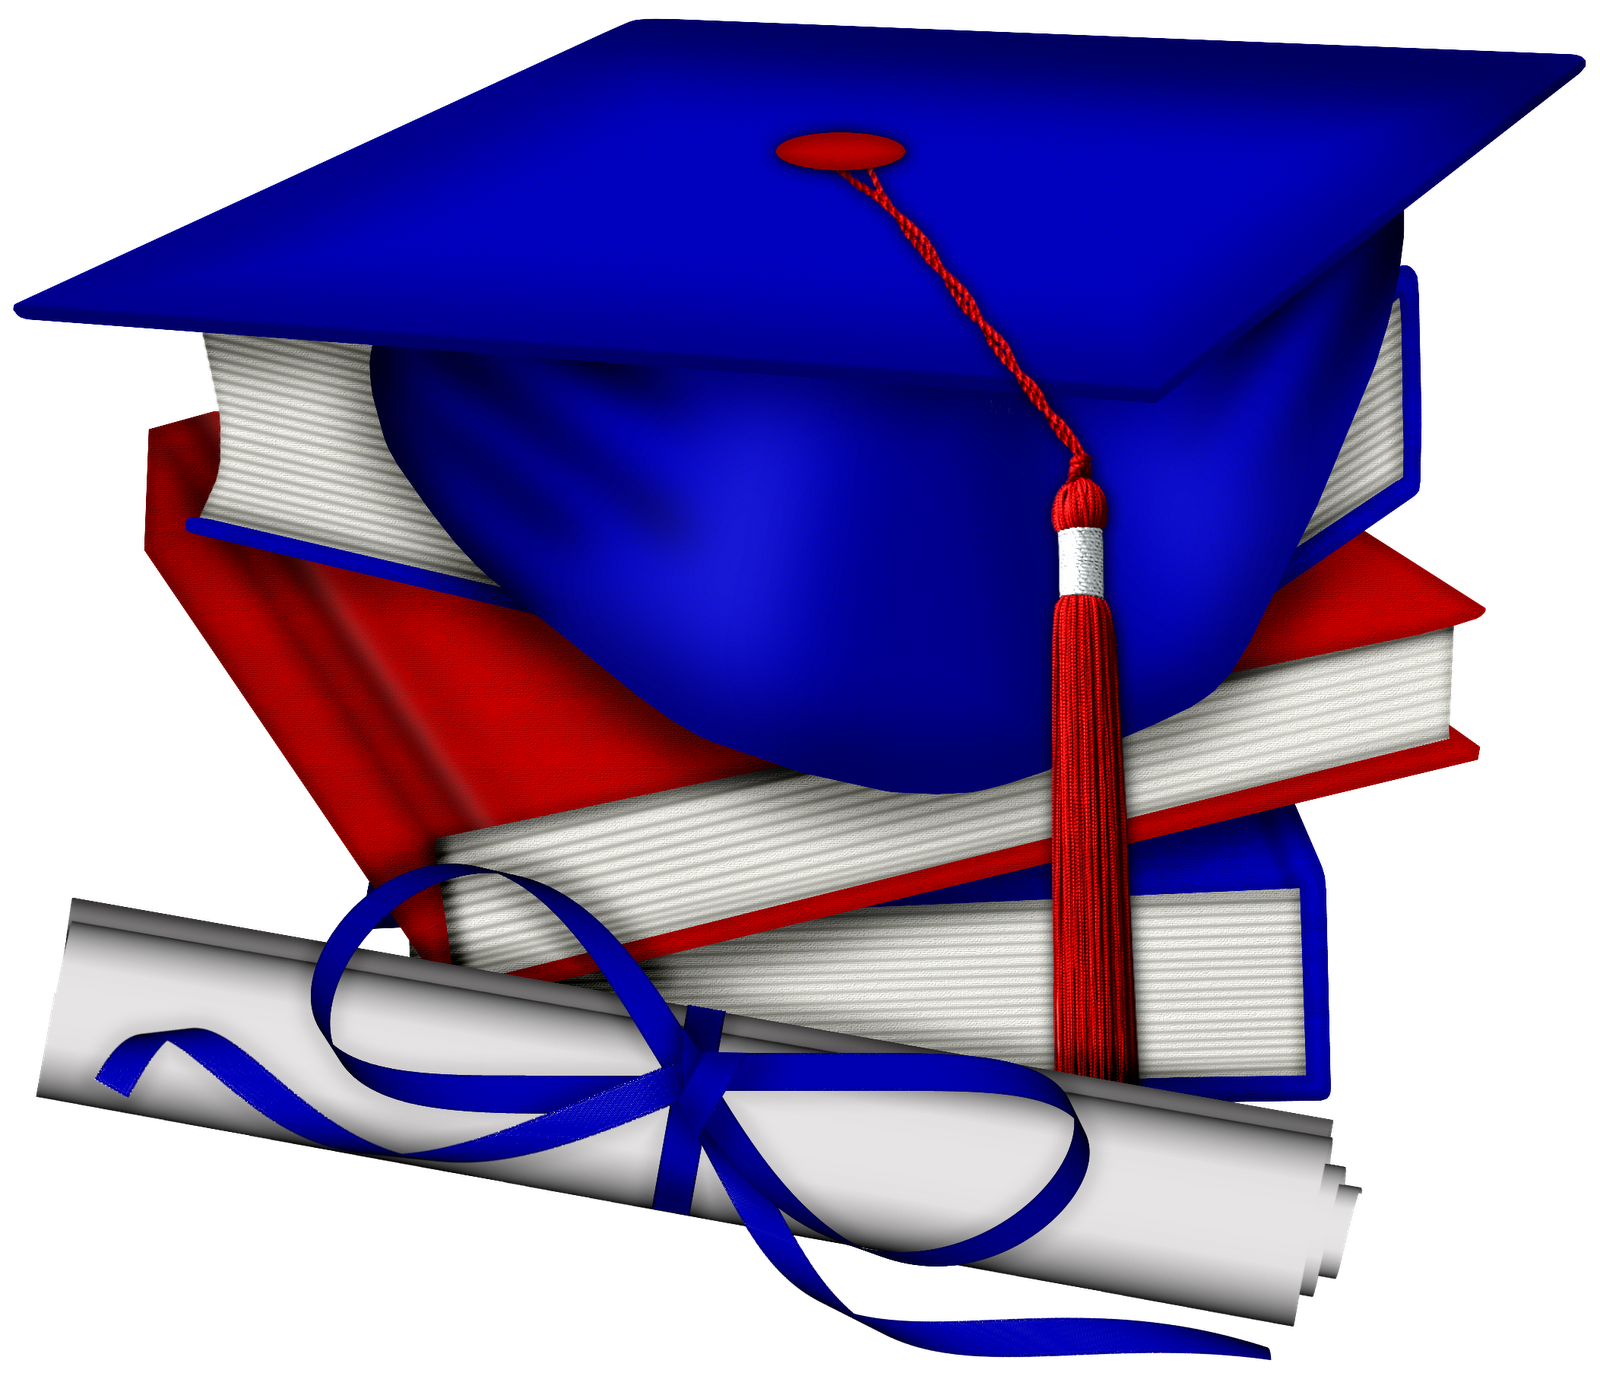 Free clipart images of high school graduation 2018 transparent library Free Preschool Graduation Clipart, Download Free Clip Art, Free Clip ... transparent library